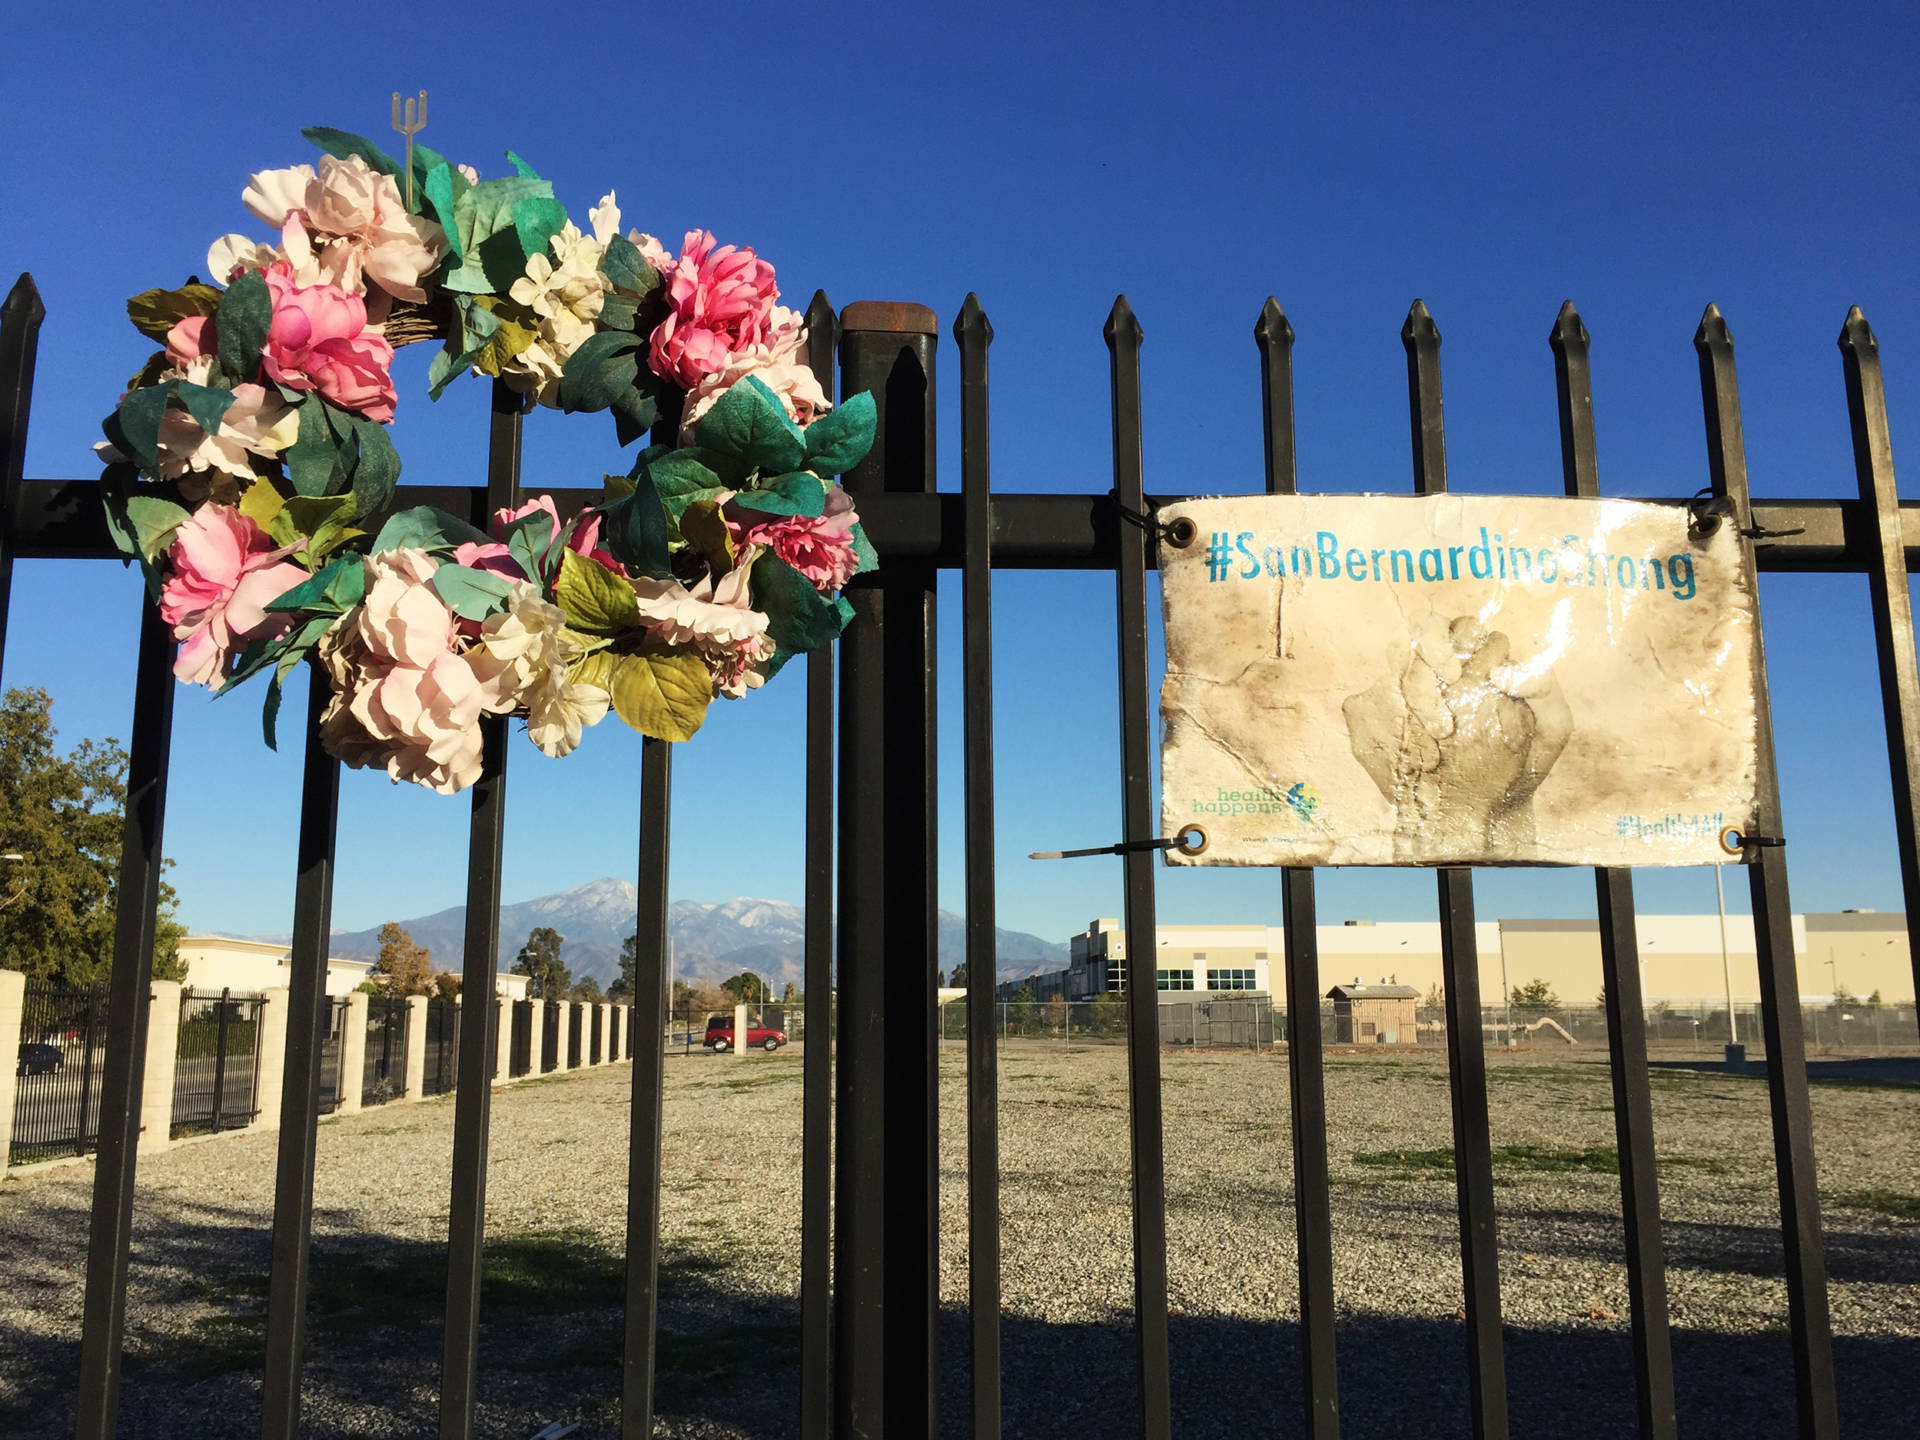 A memorial to the victims killed in San Bernardino on Dec. 2, 2015. Nathan Rott/NPR